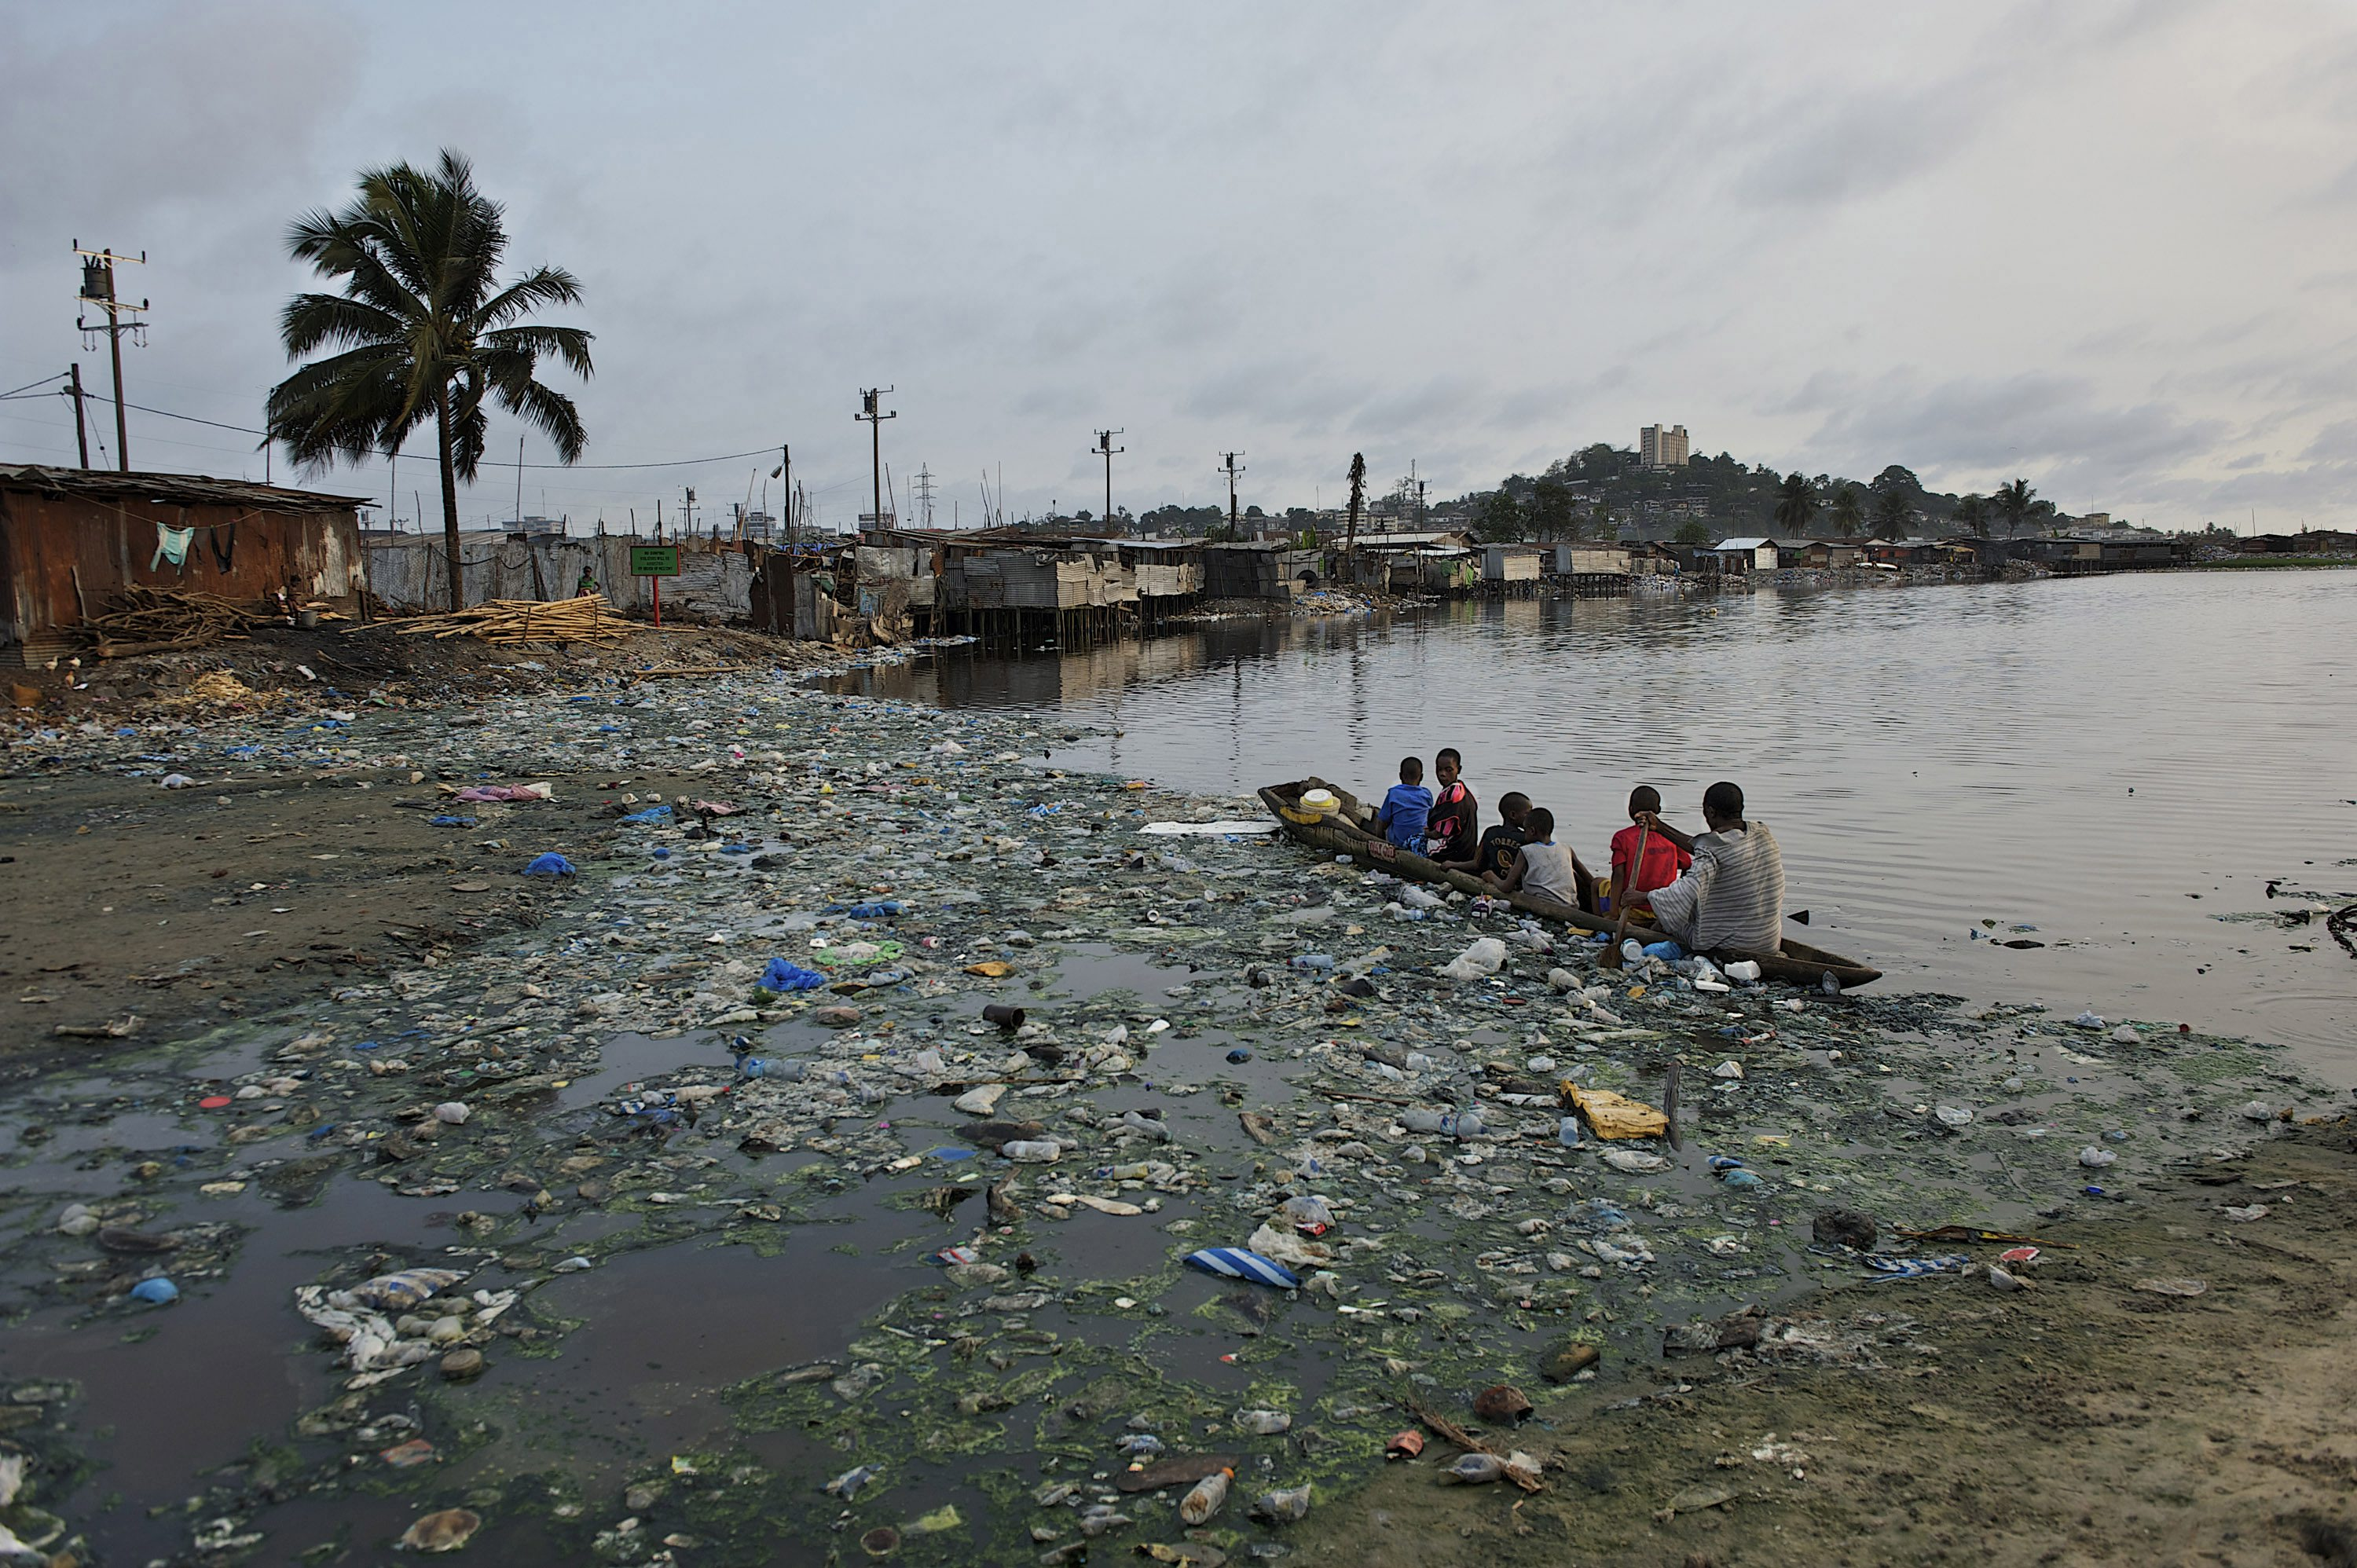 Children ride a canoe across a polluted water body near the beach at the West Point Township in Monrovia,  Liberia. The West Point Township or slum  houses over 70,000 people. Water and sanitation condition in the slum is certainly less that adequate. Due to the lack of sanitary latrines, it is common for many residents of the West Point to defecate in open near the beach.